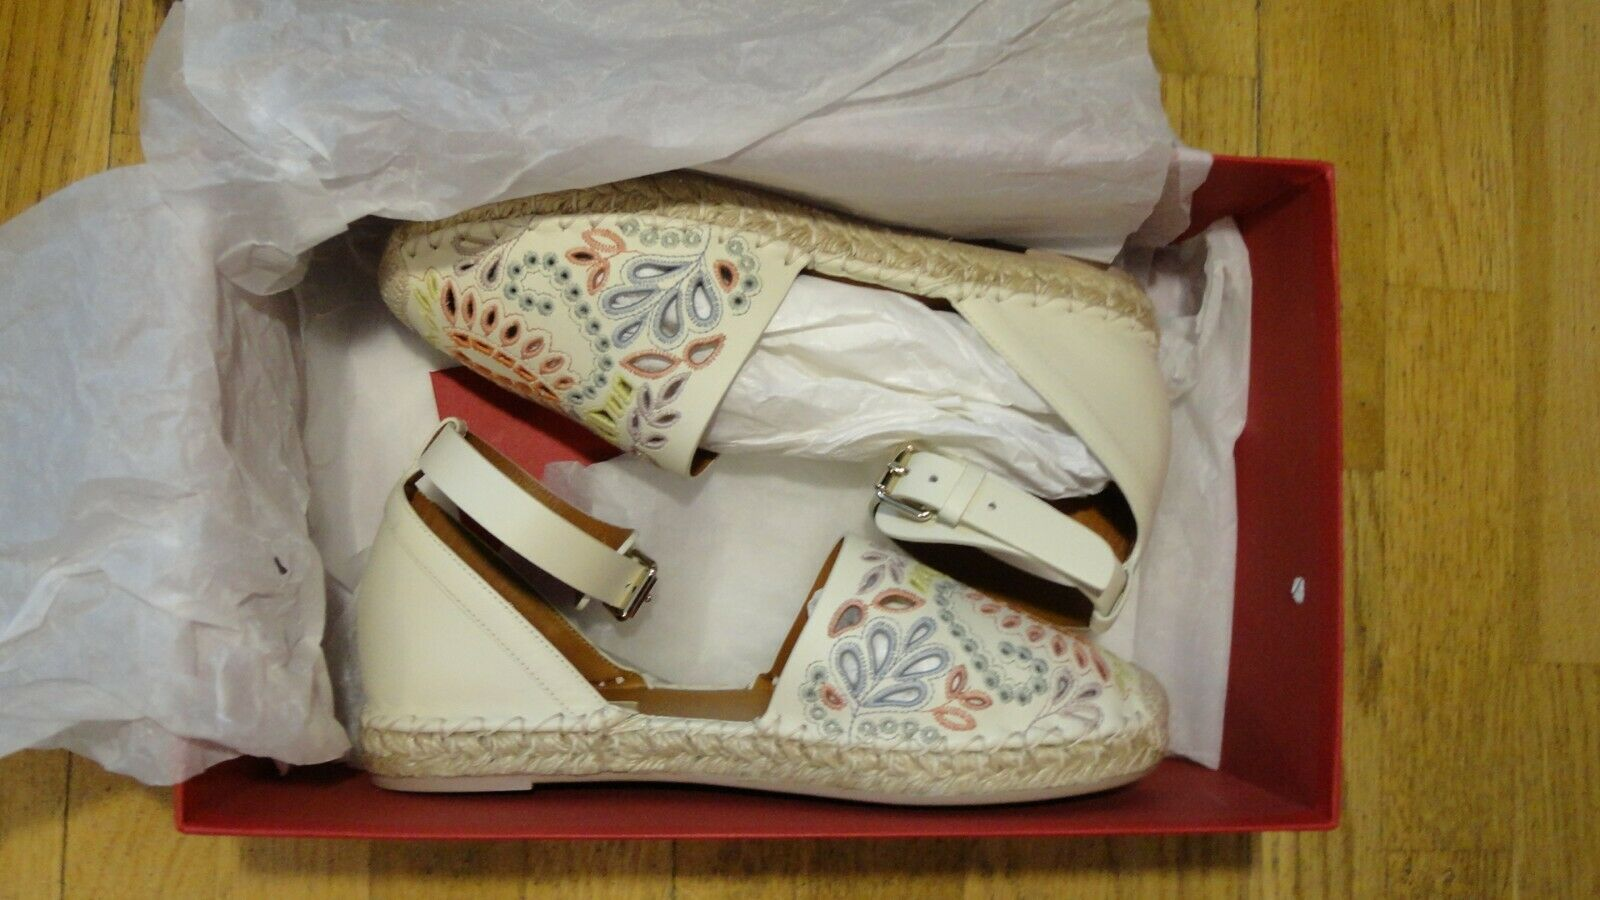 VALENTINO GARAVANI NIB NIB NIB Woman Embroidered Leather Espadrilles Sandals shoes 36 6 080b43